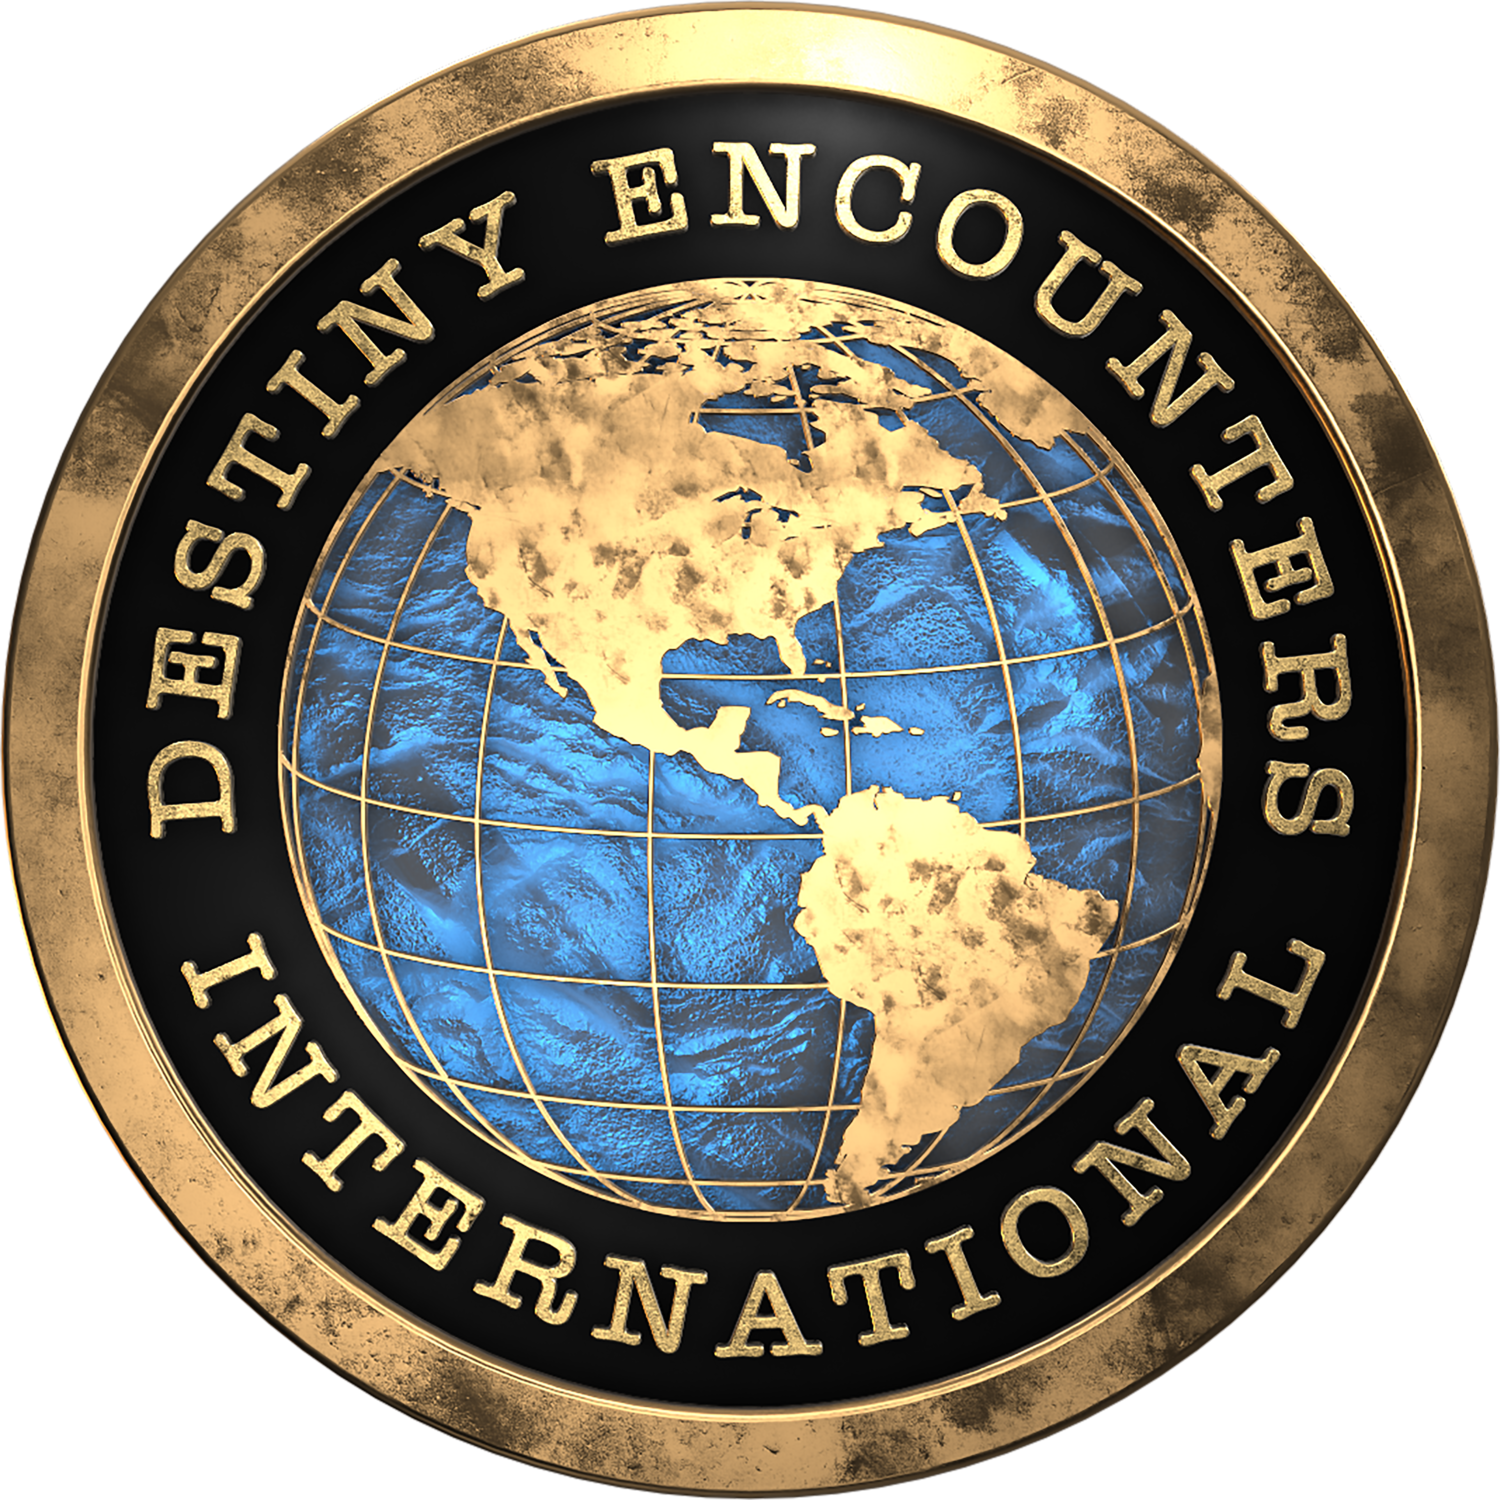 Destiny Encounters International